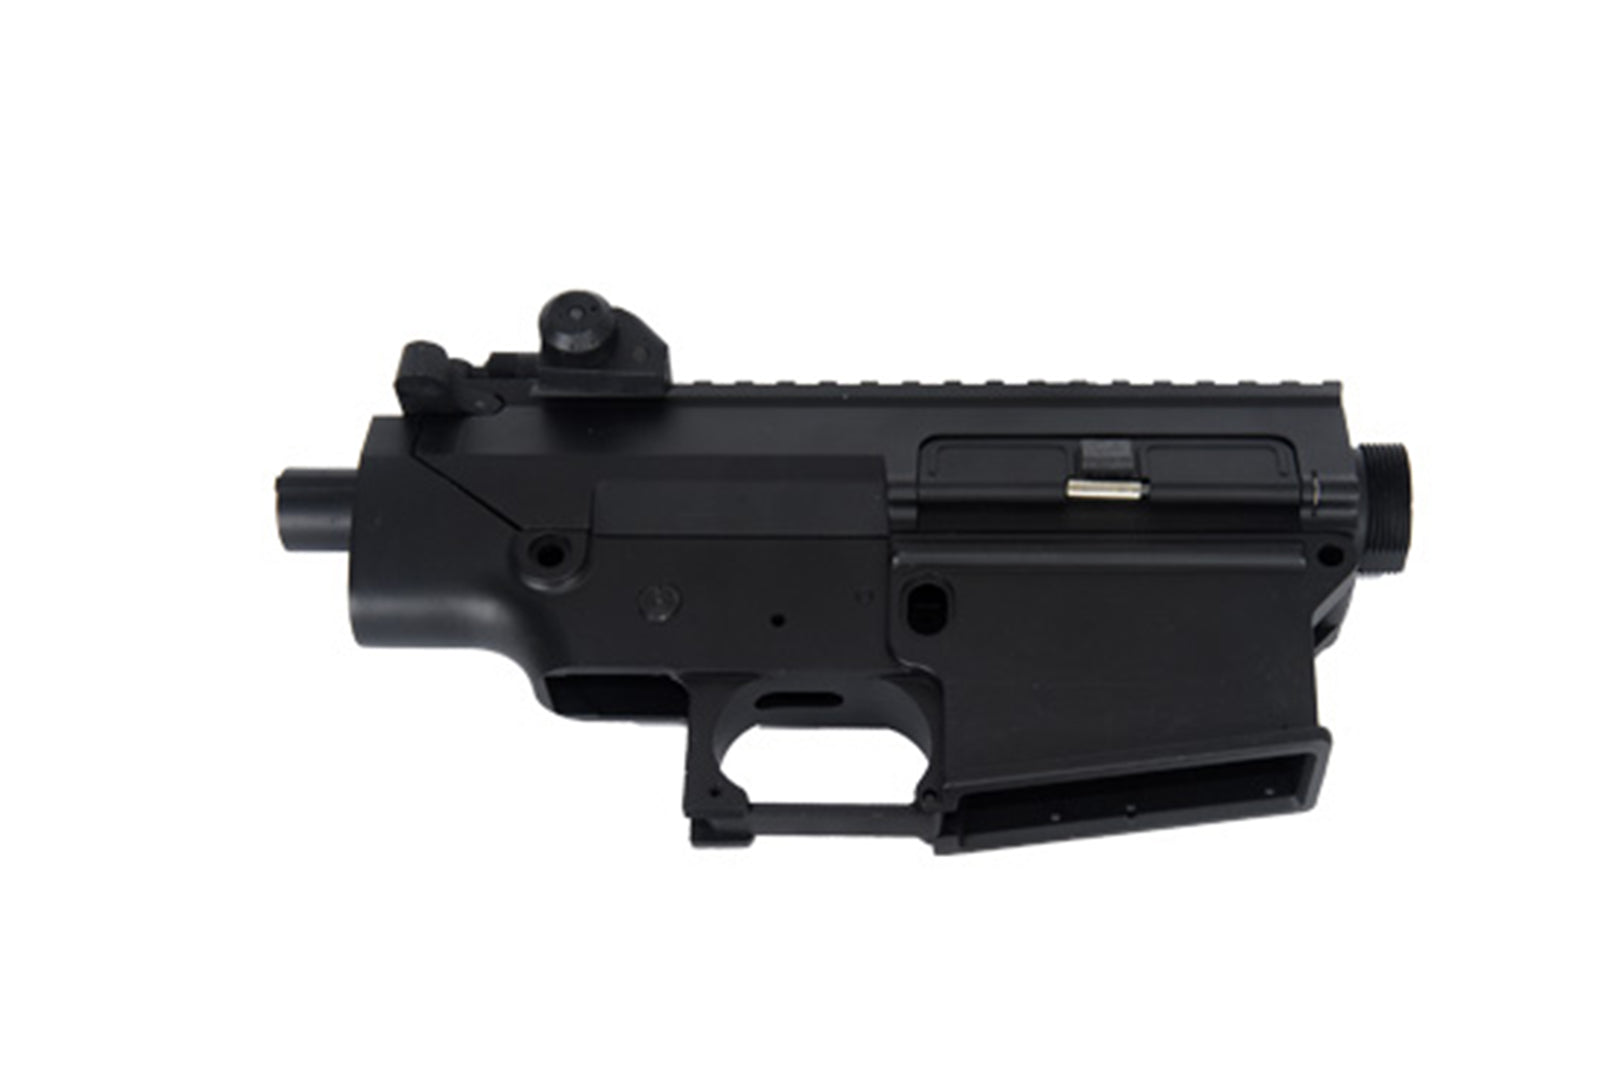 JG AIRSOFT SR-25 FULL METAL BODY COMPONENT W/ OPTICS RAIL